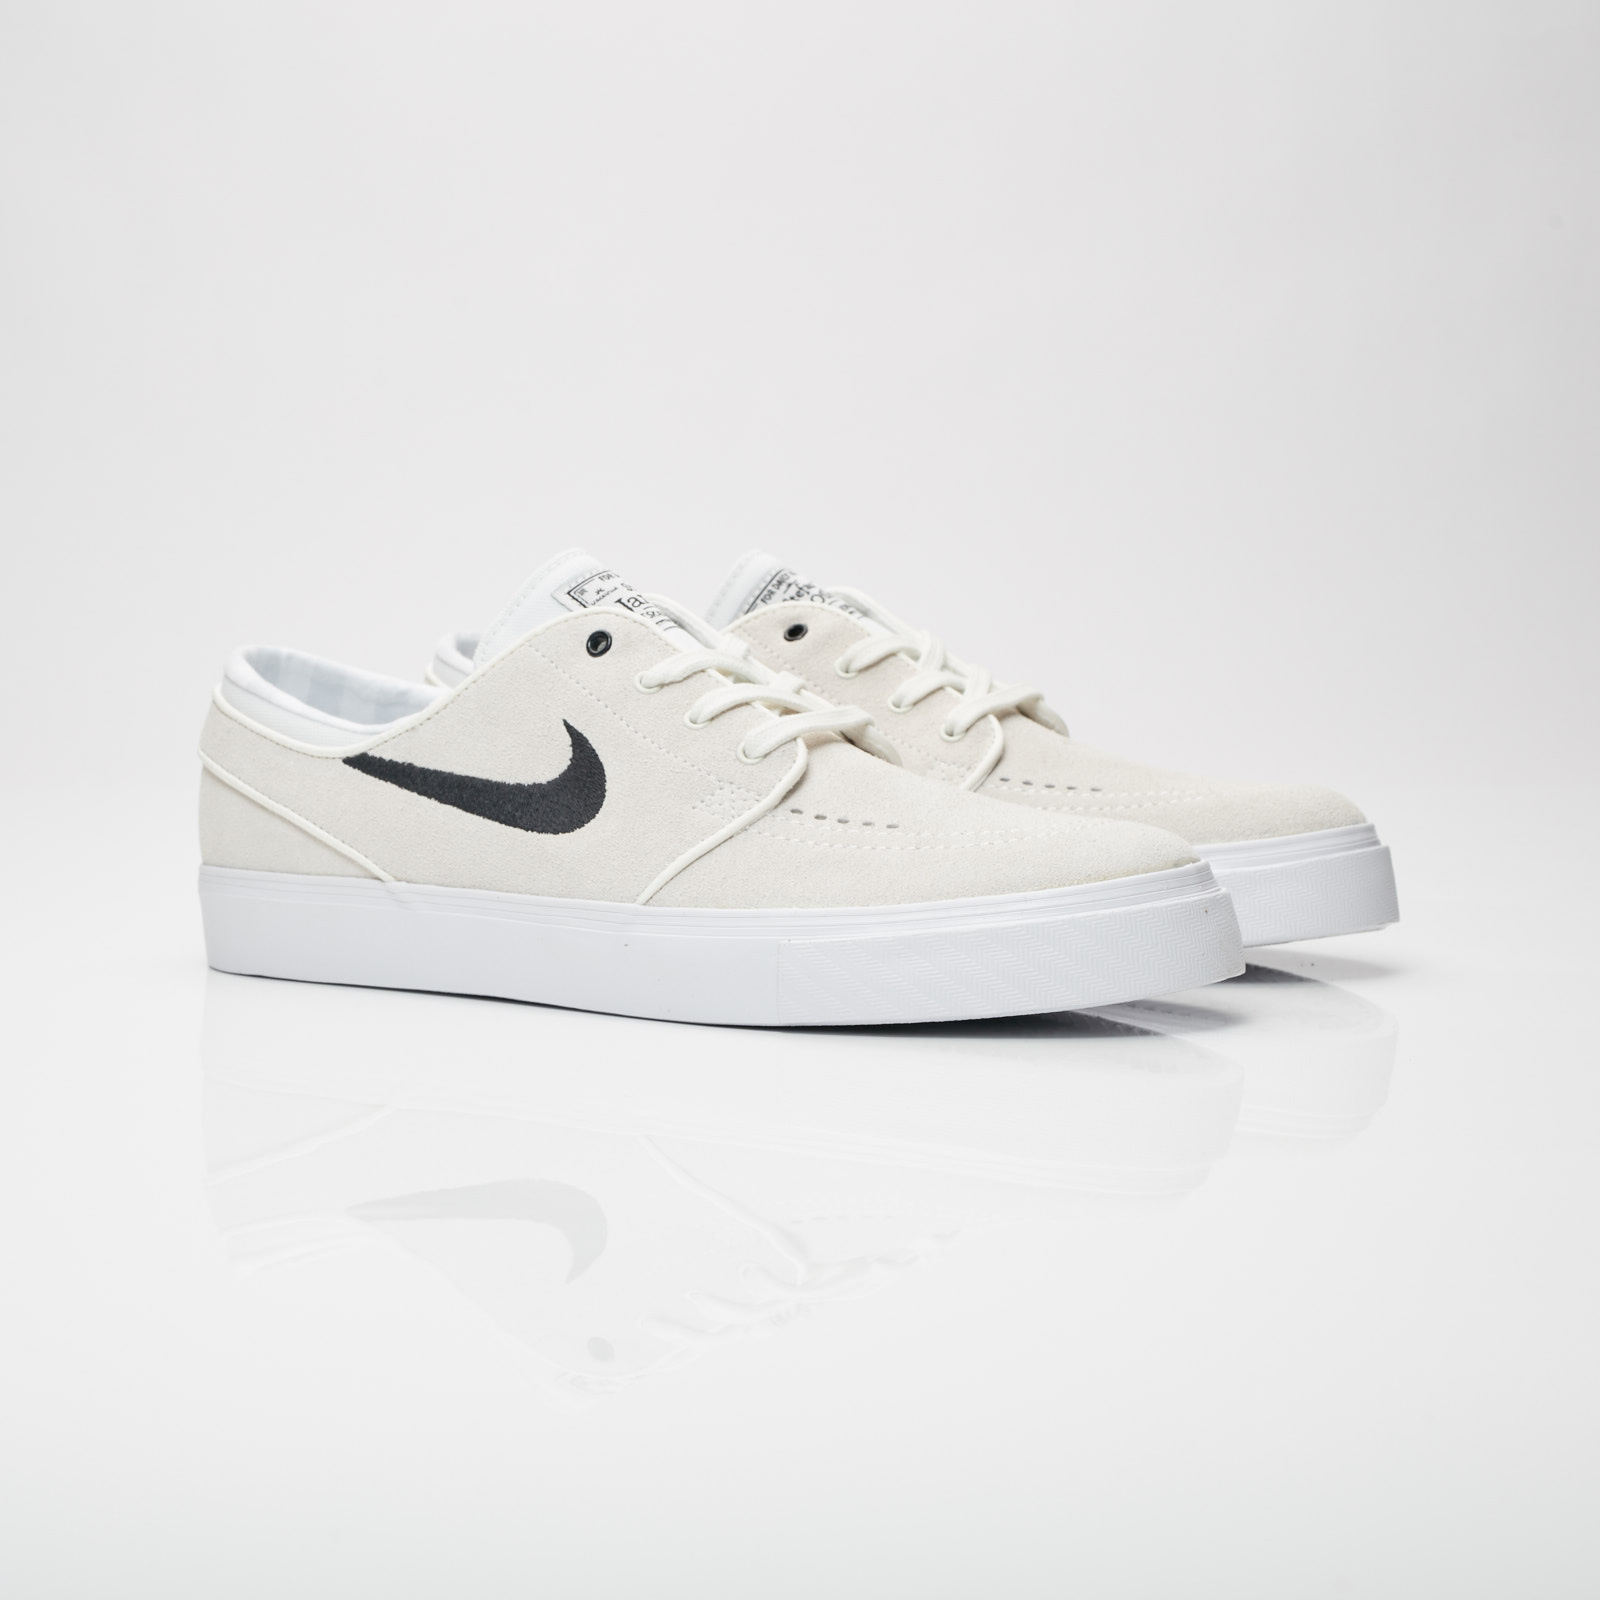 Nike SB Zoom Stefan Janoski Trainers In Beige 333824-107 outlet new many kinds of sale online sale best prices footaction cheap online VkEUQ5EYR5